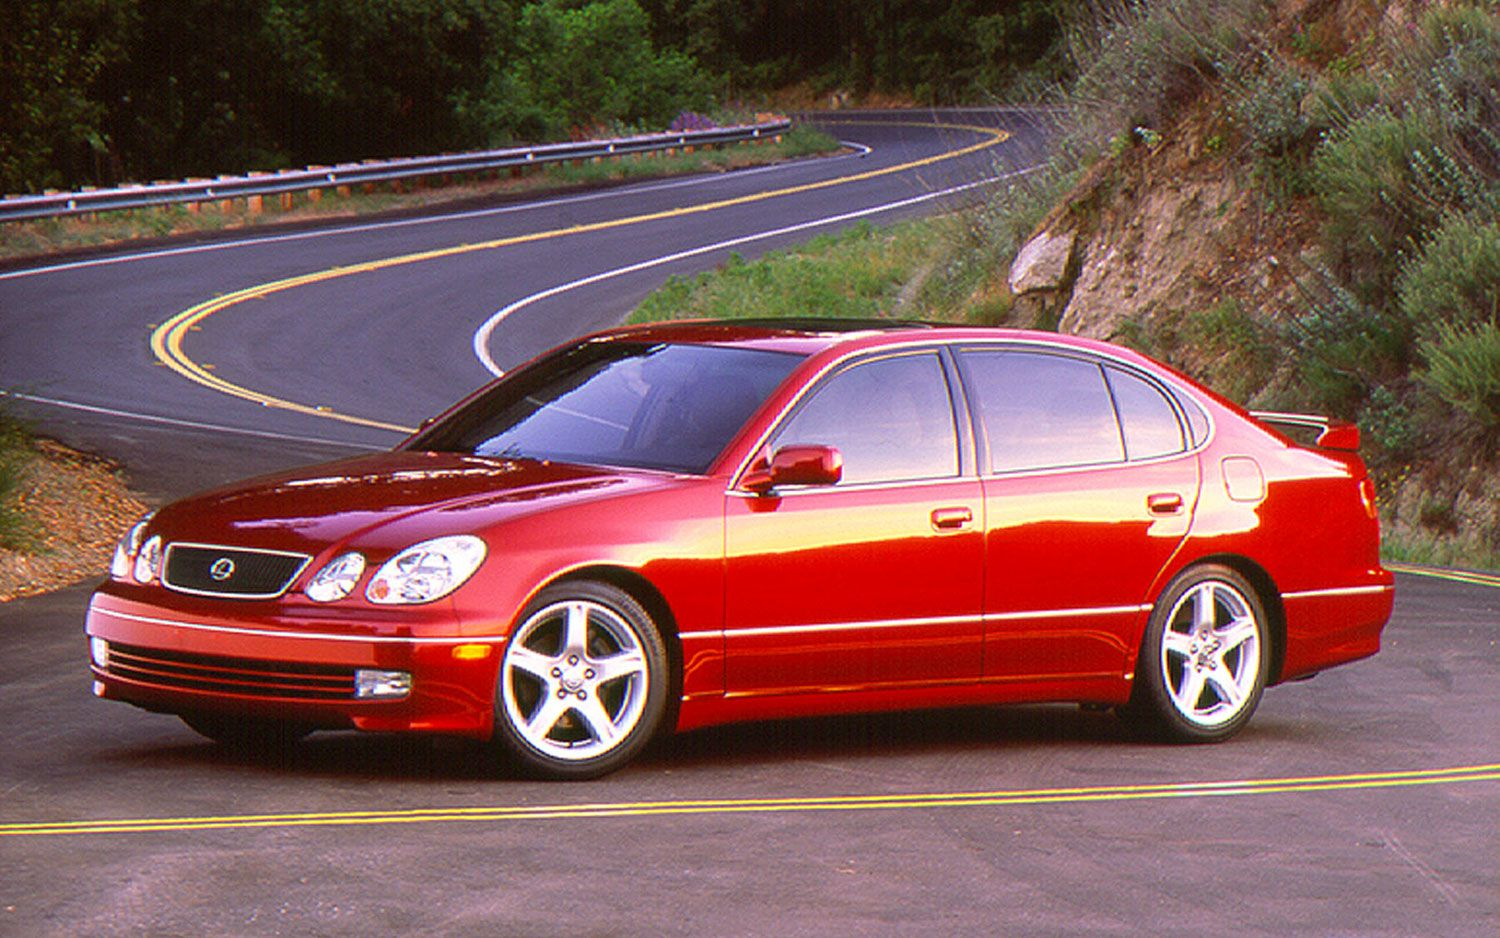 1998 Import Car of the Year as per Motor Trend, Lexus GS